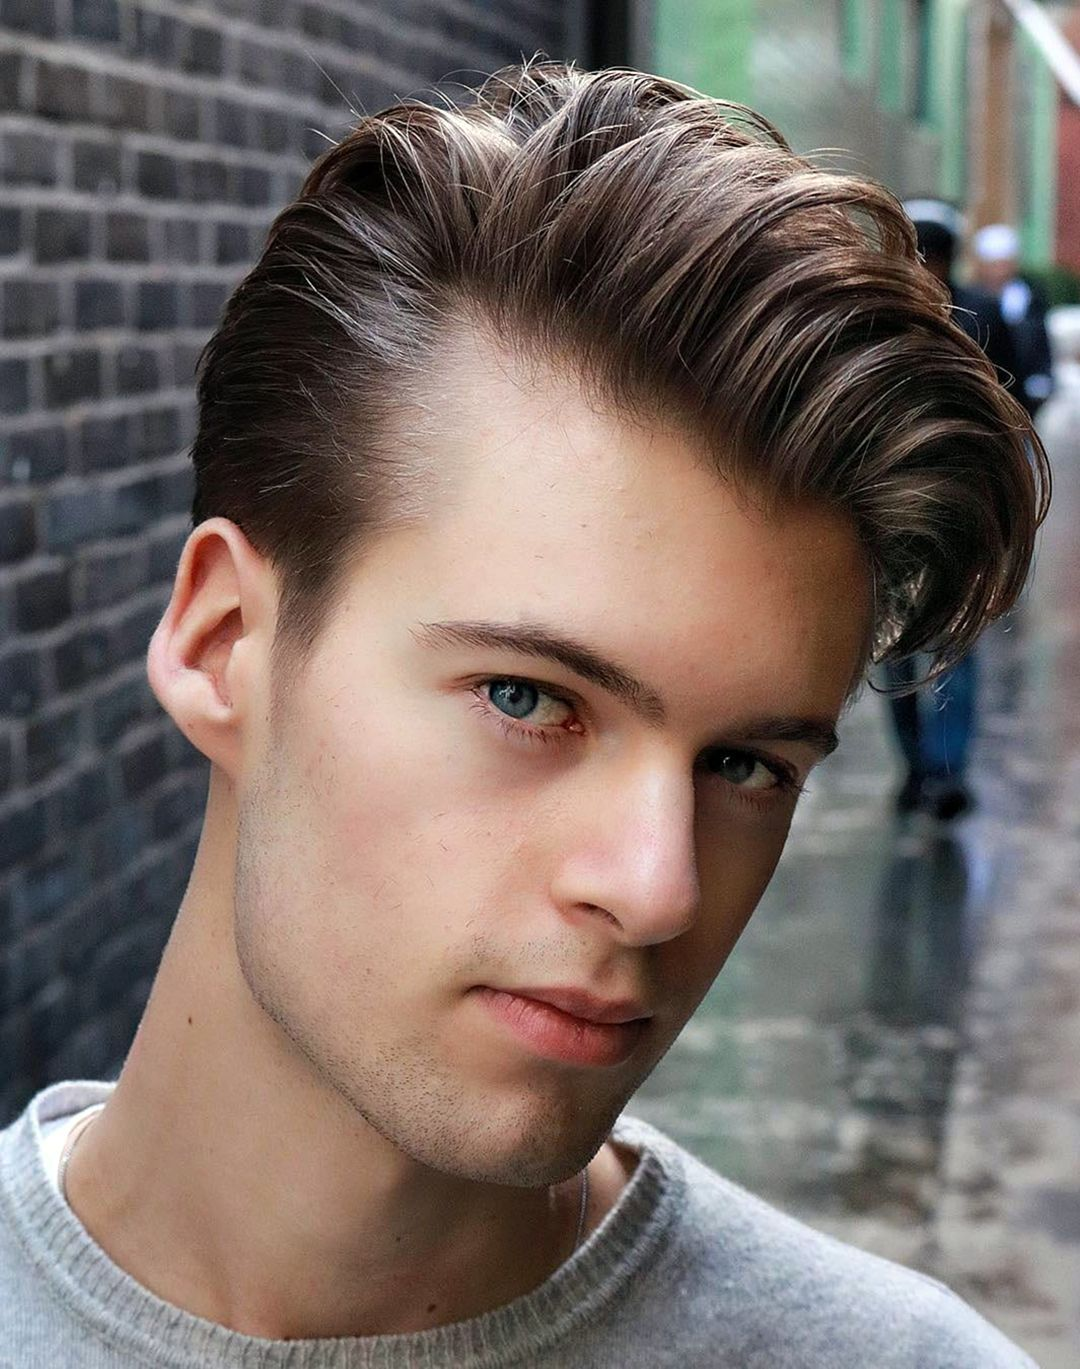 8 Haircut Inspirations You Can Try From Young Men Hairstyles Fashions Nowadays Comb Over Haircut Mens Comb Over Hairstyles Haircuts For Men